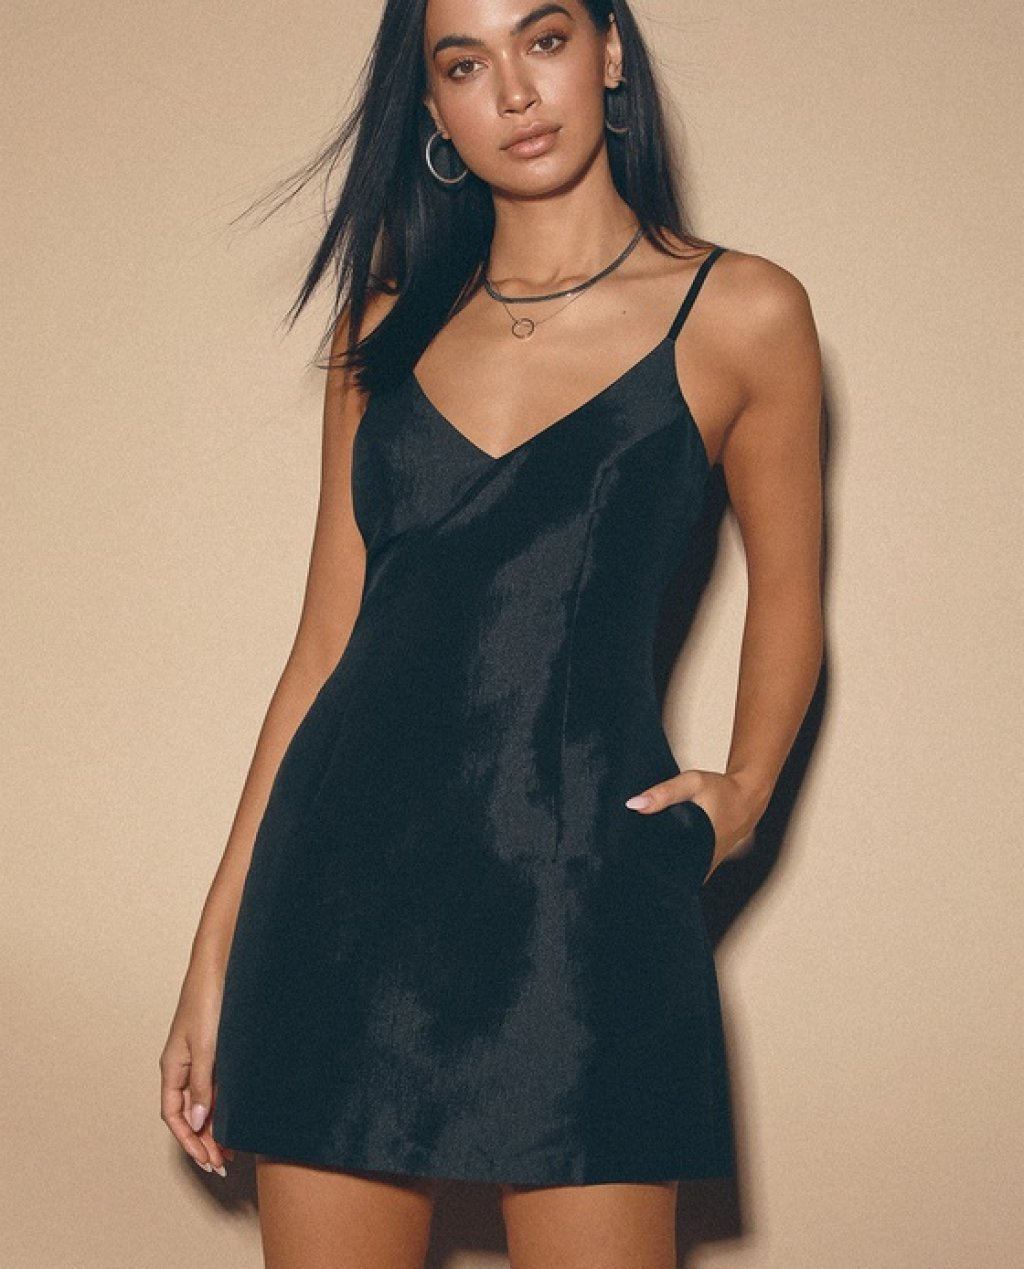 My Desire Black V-Neck Mini Dress